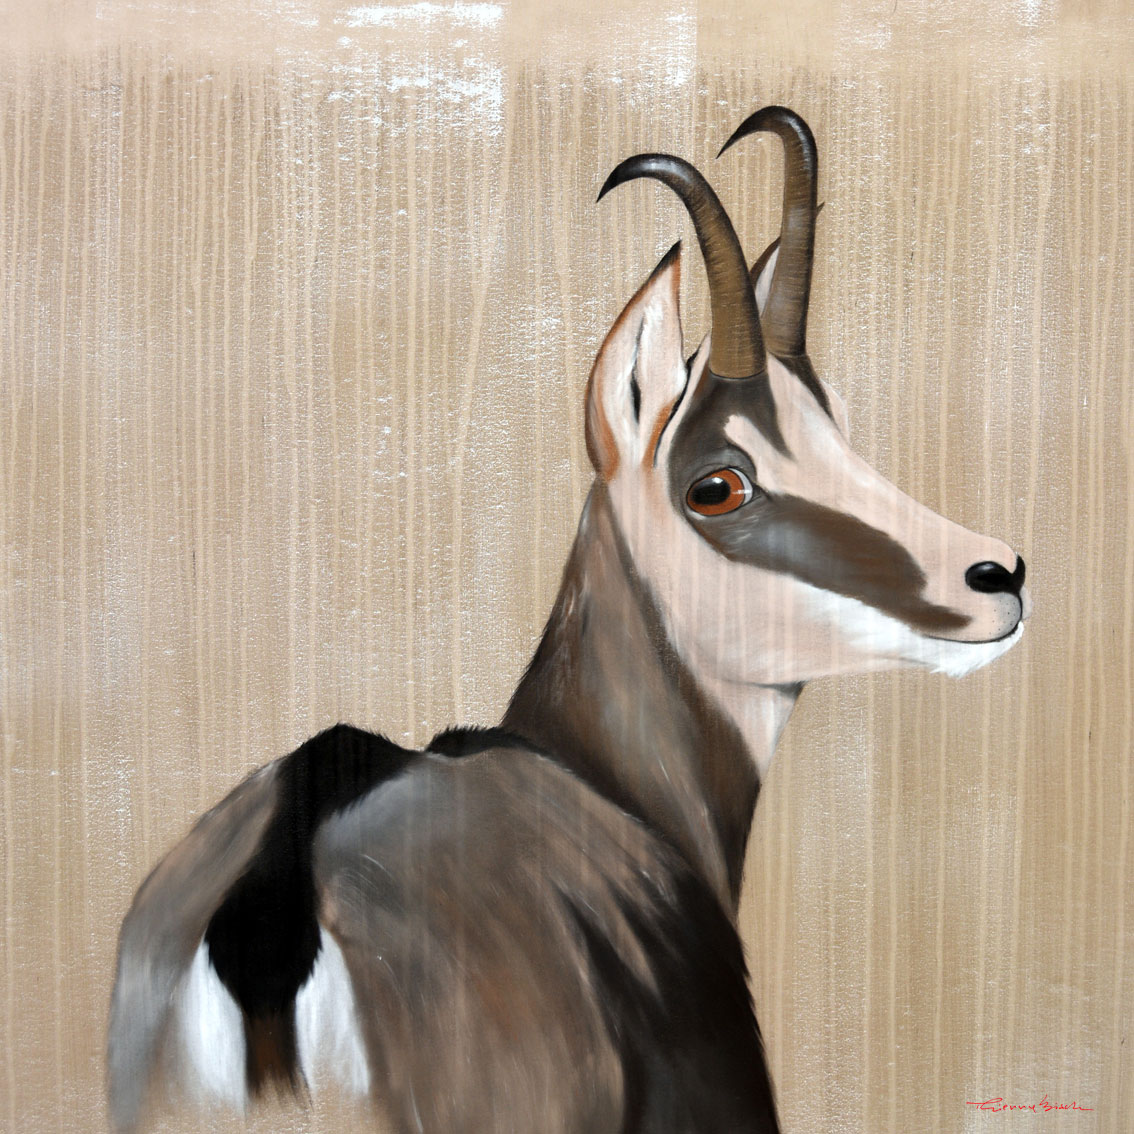 MOTIONLESS CHAMOIS CHAMOIS Thierry Bisch painter animals painting art decoration hotel design interior luxury nature biodiversity conservation